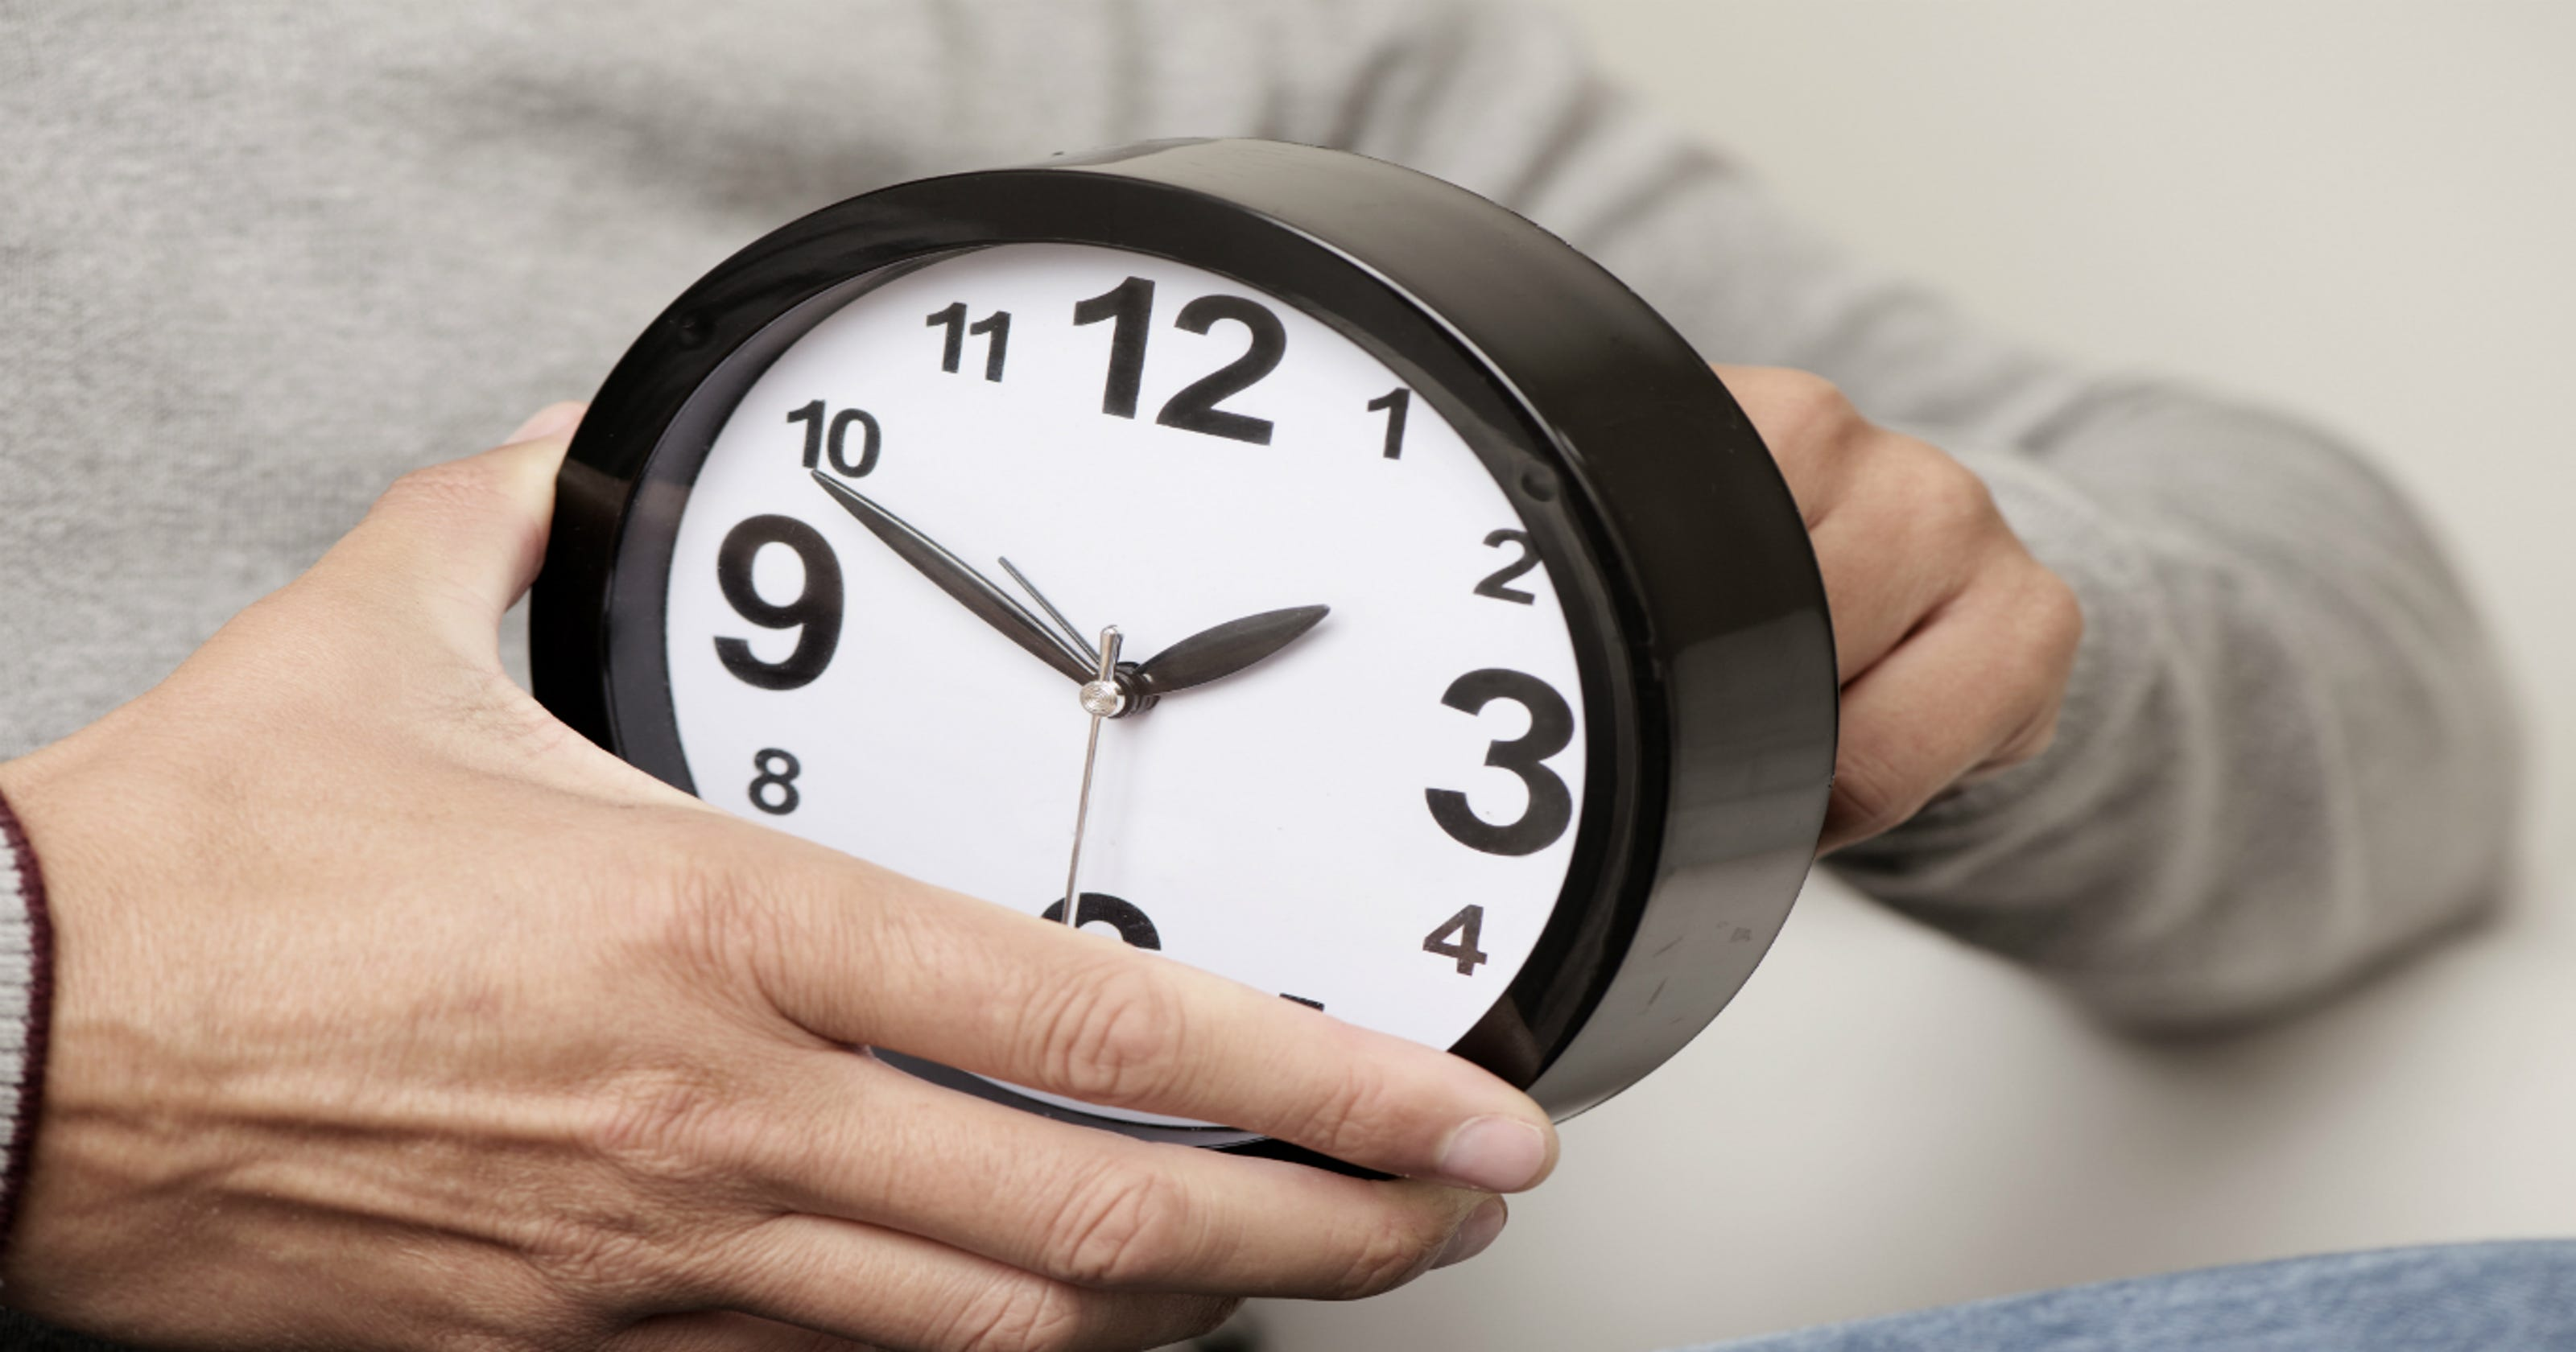 Daylight saving time confounds hospital electronic medical